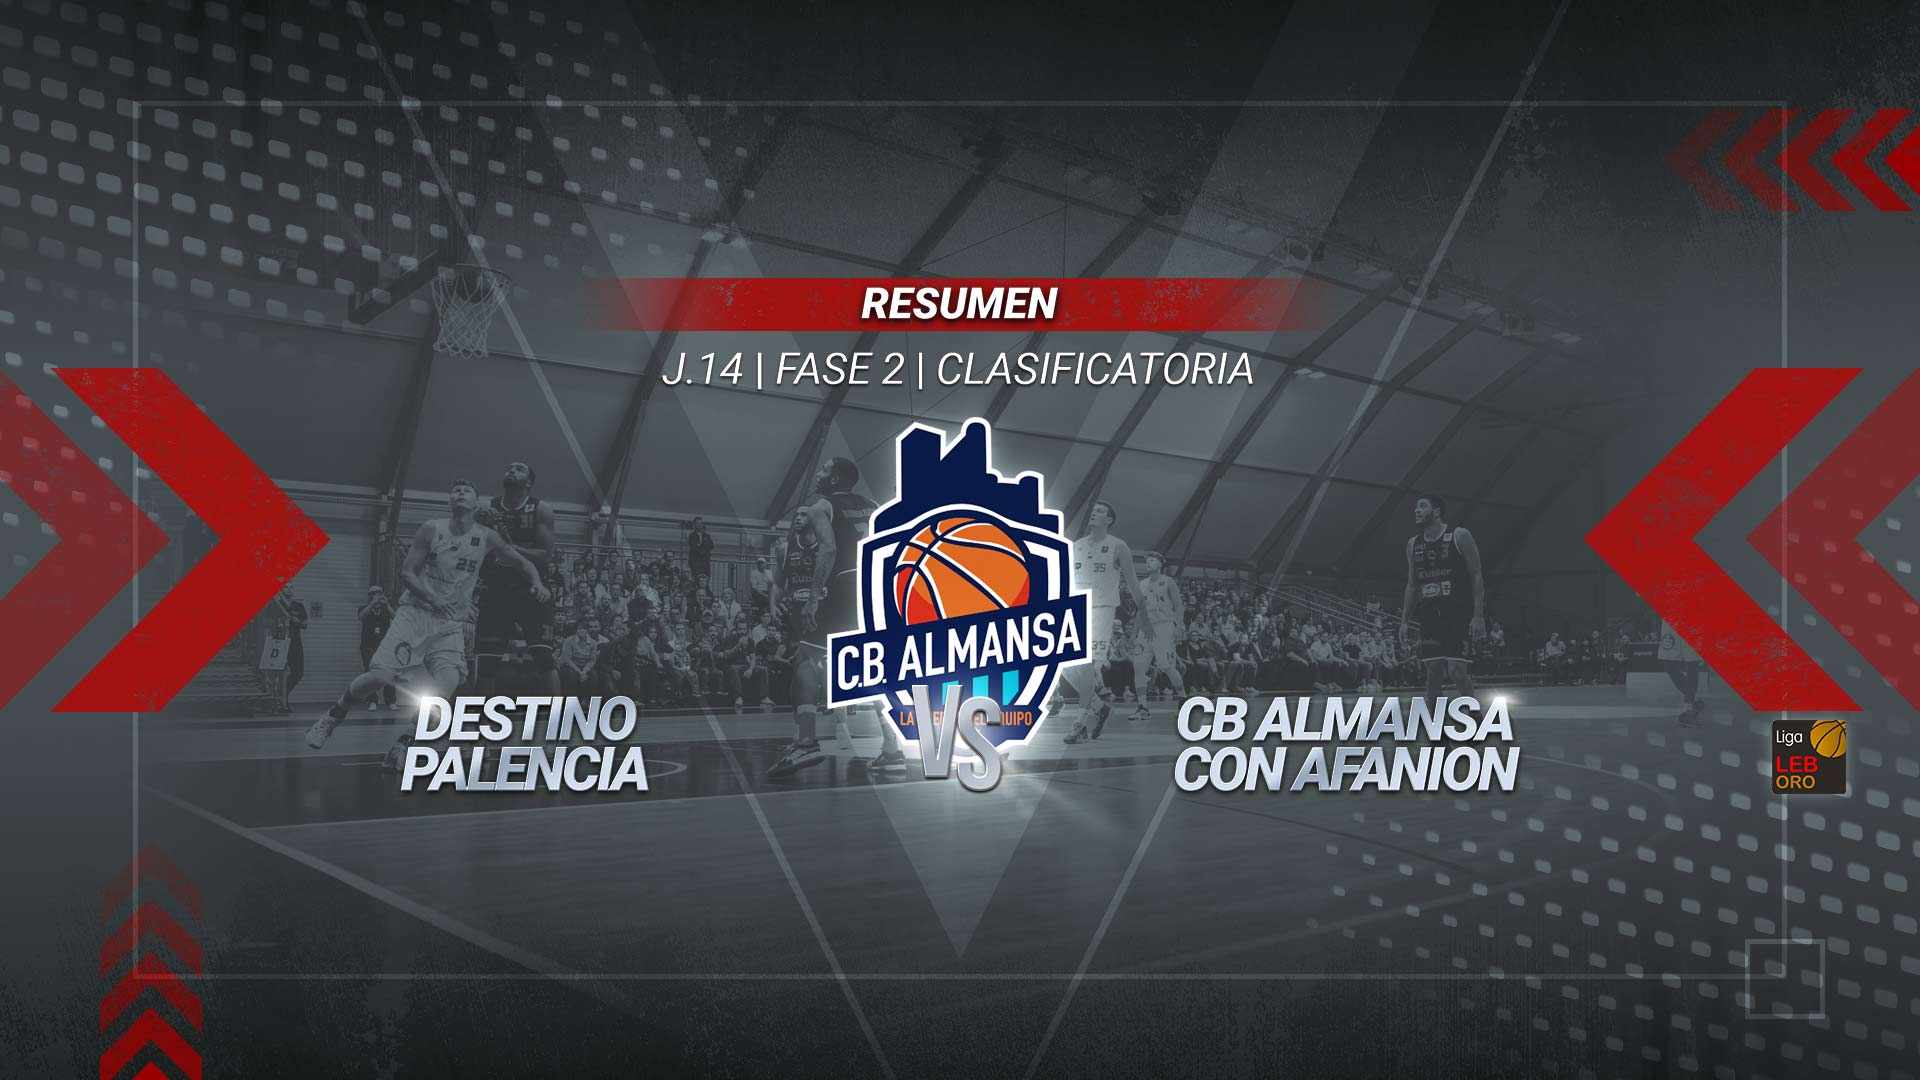 enplay_baloncesto_resumen_PAL_ALM_CMMPLAY